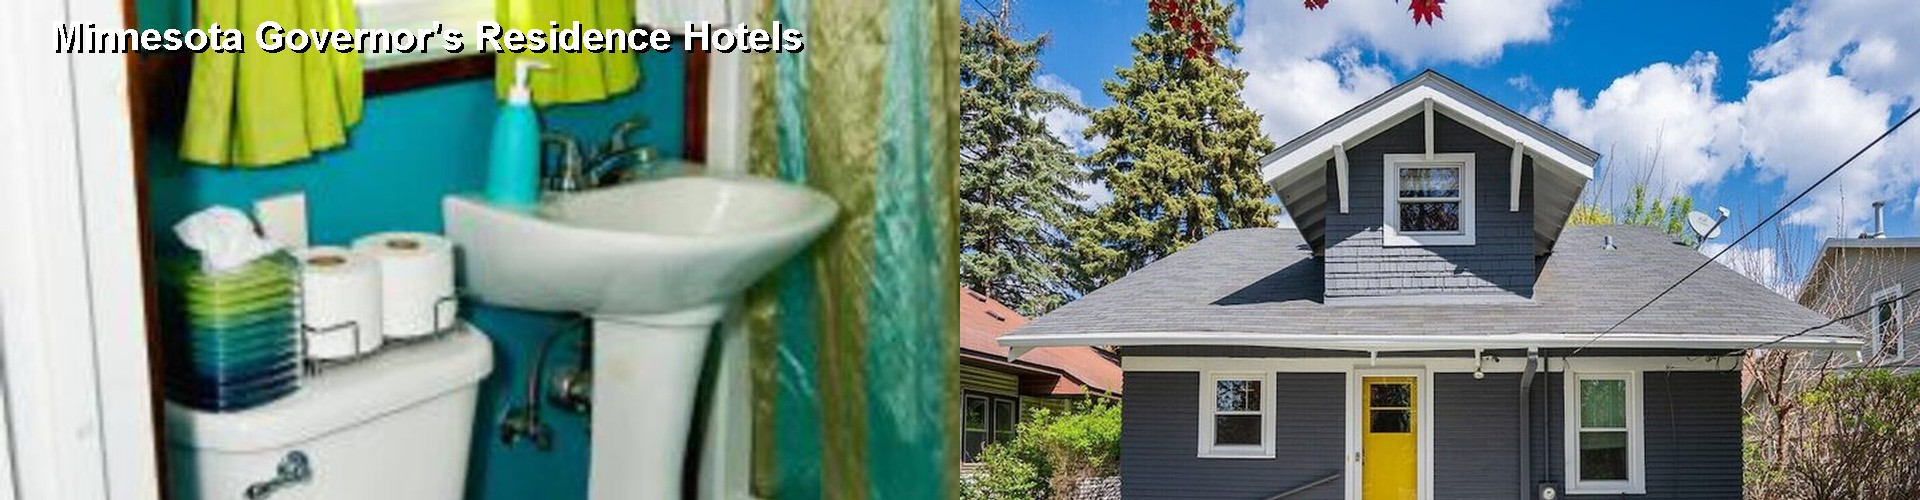 5 Best Hotels near Minnesota Governor's Residence